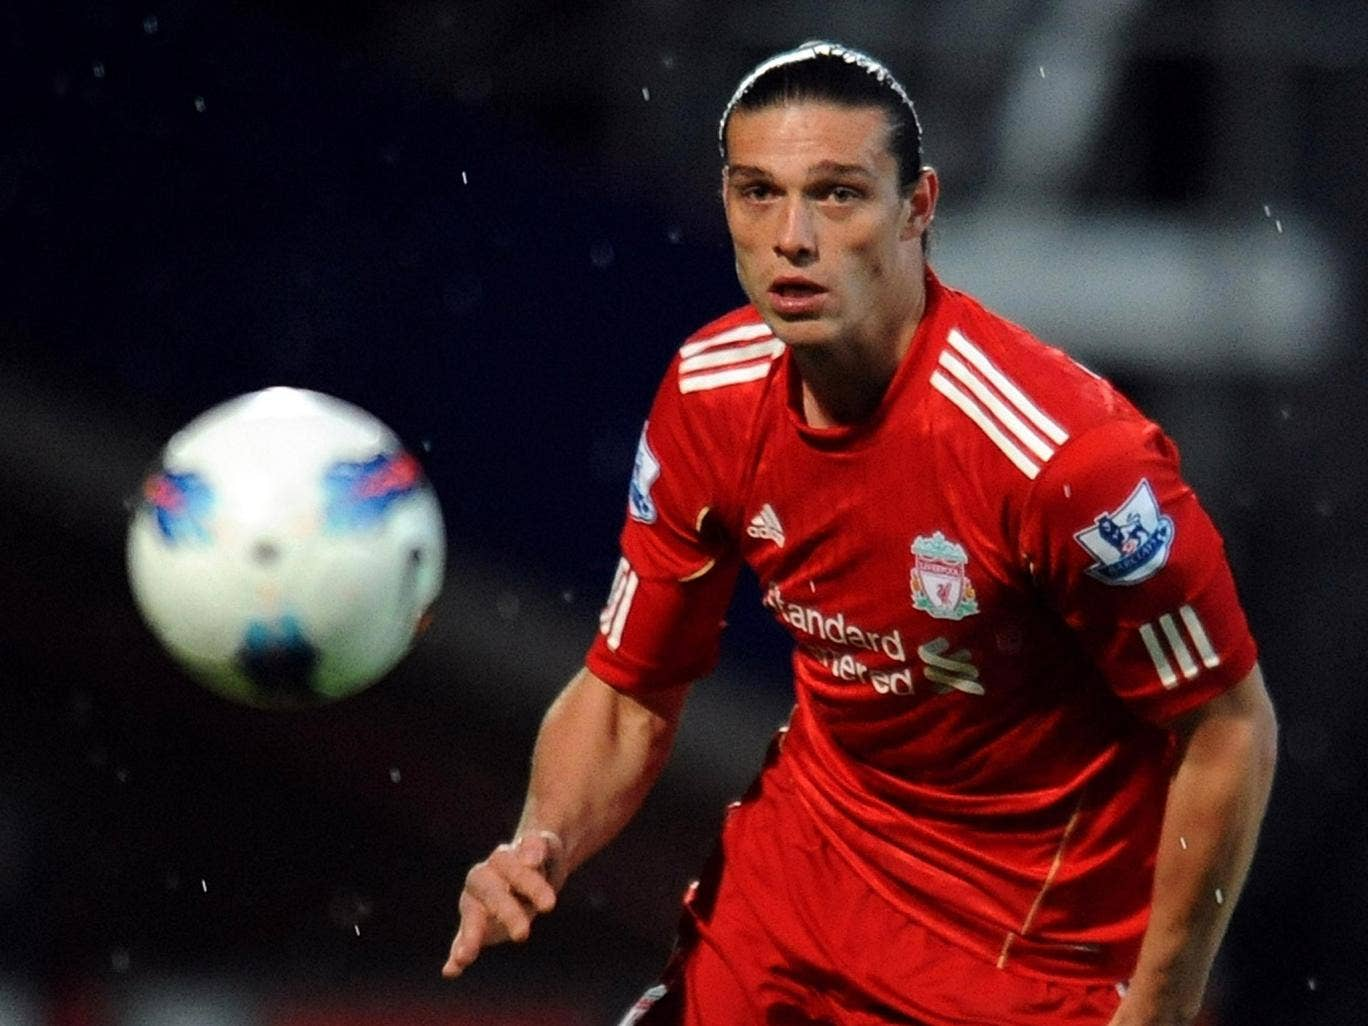 Andy Carroll found himself out of place at Brendan Rodgers' Liverpool